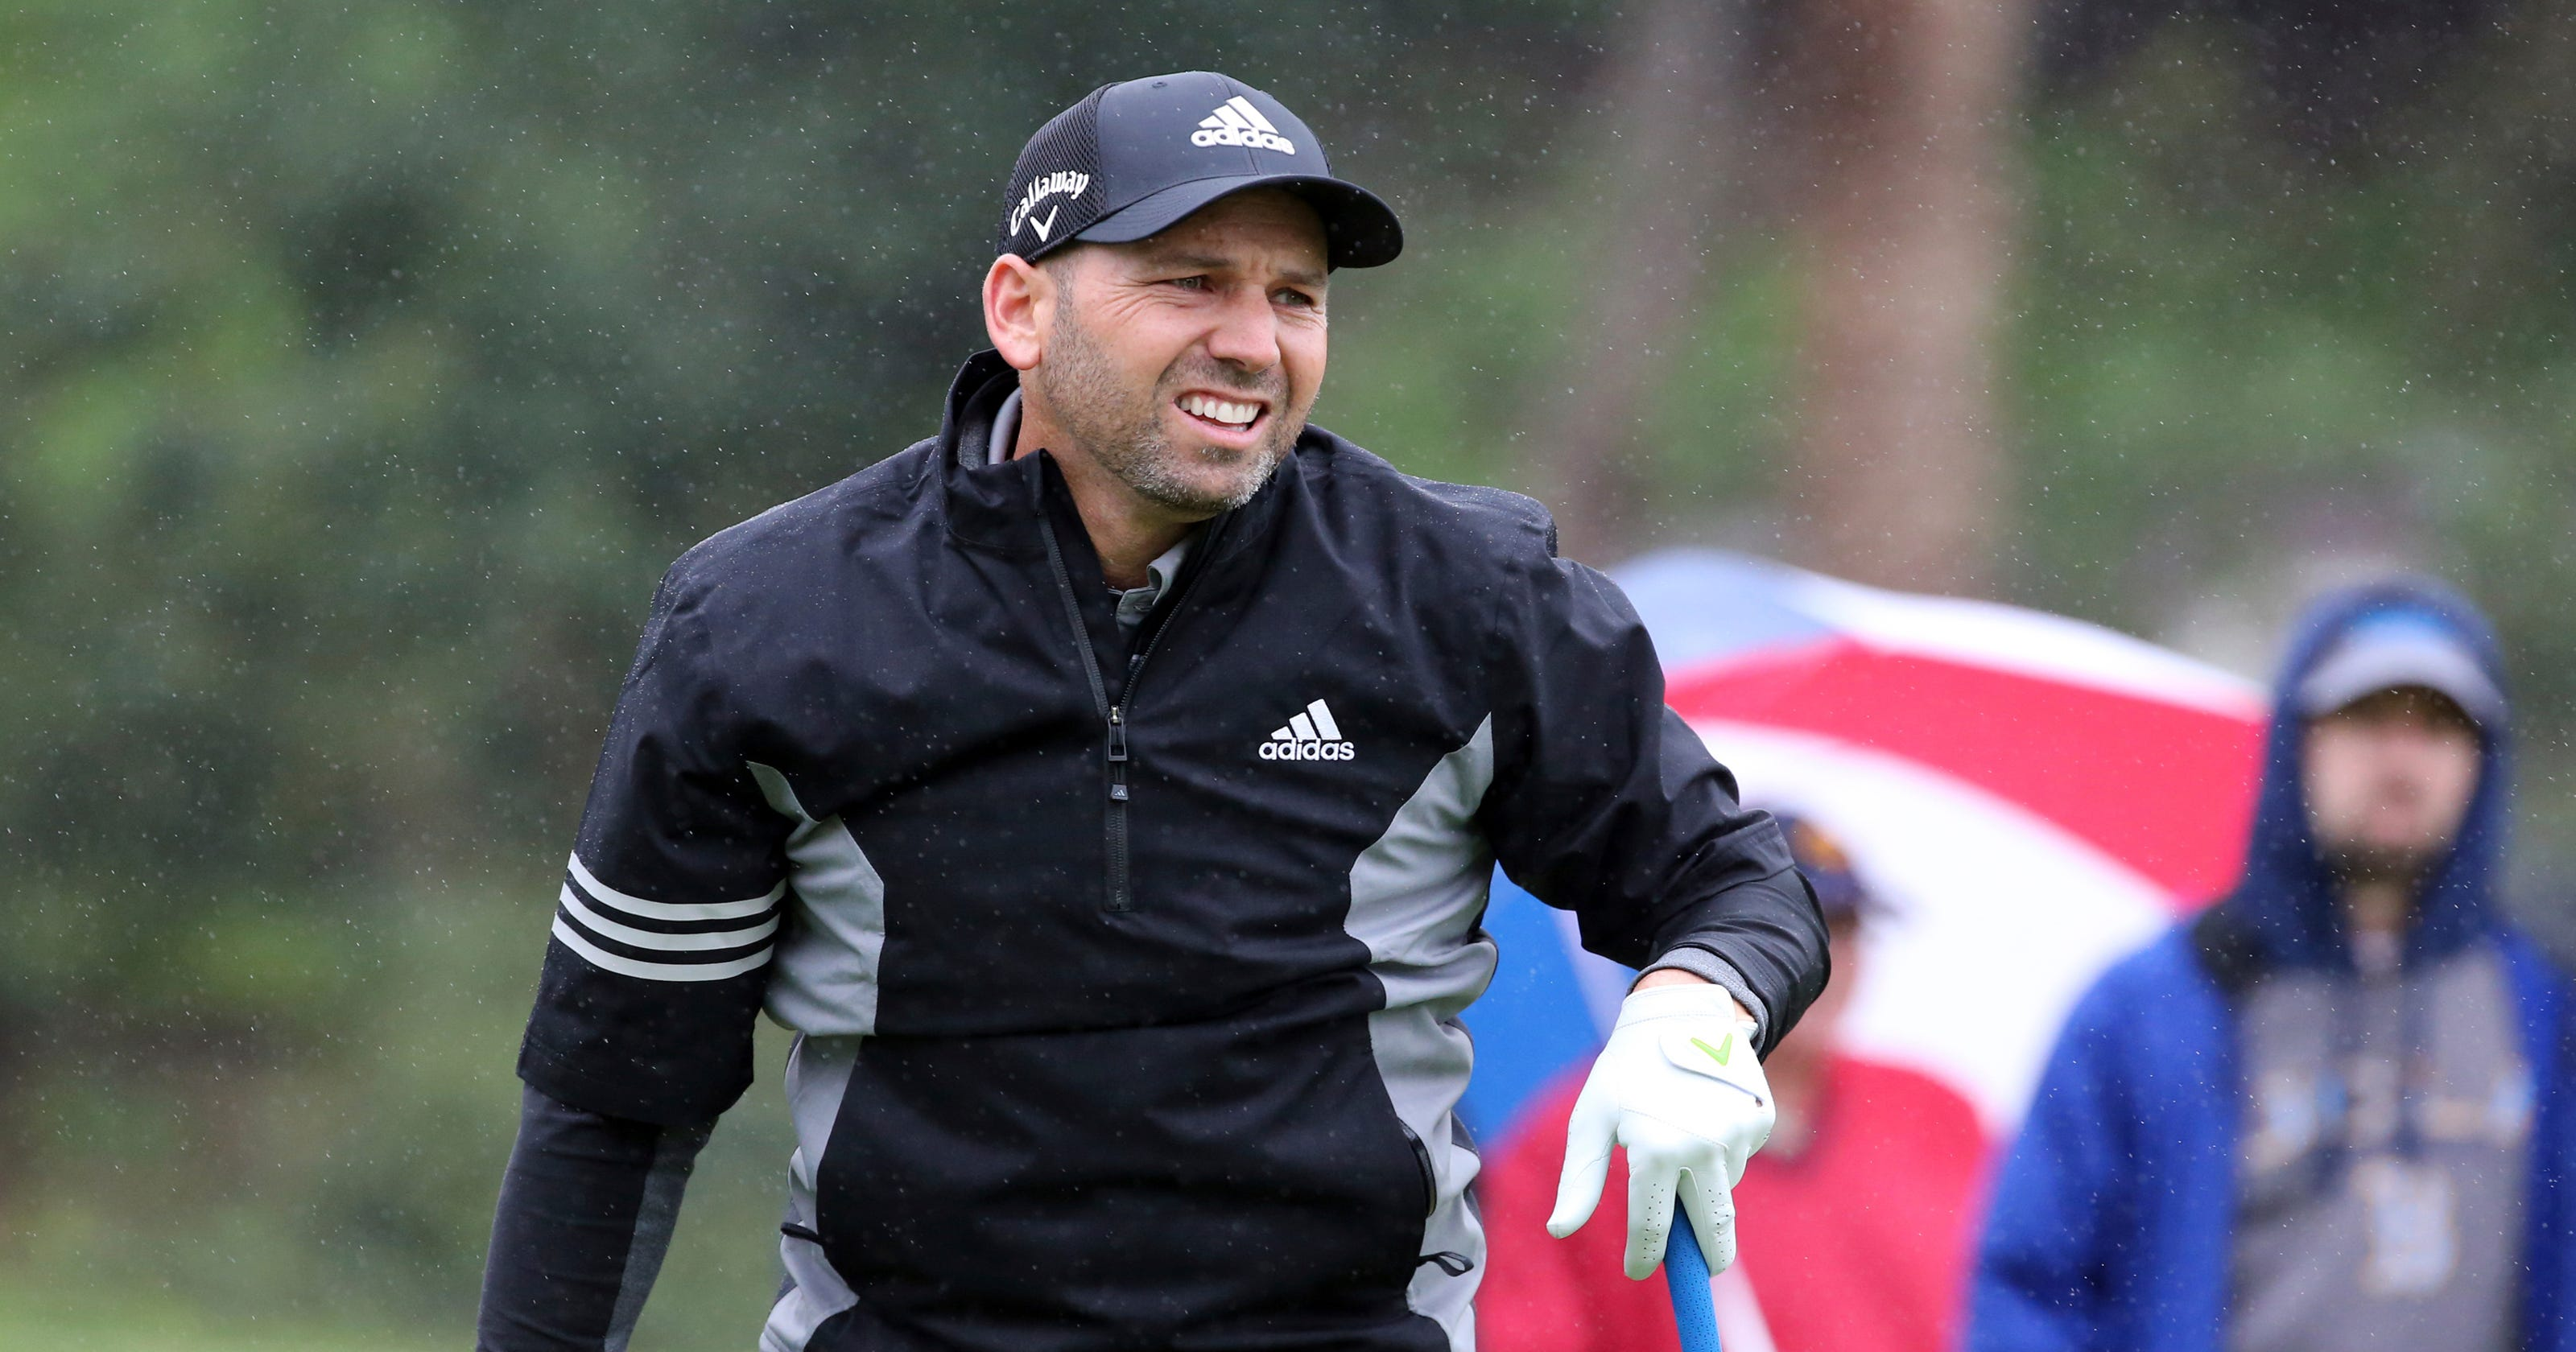 Sergio Garcia apologizes for damaging greens   I want to face my mistakes  head on  d95b0abe33f